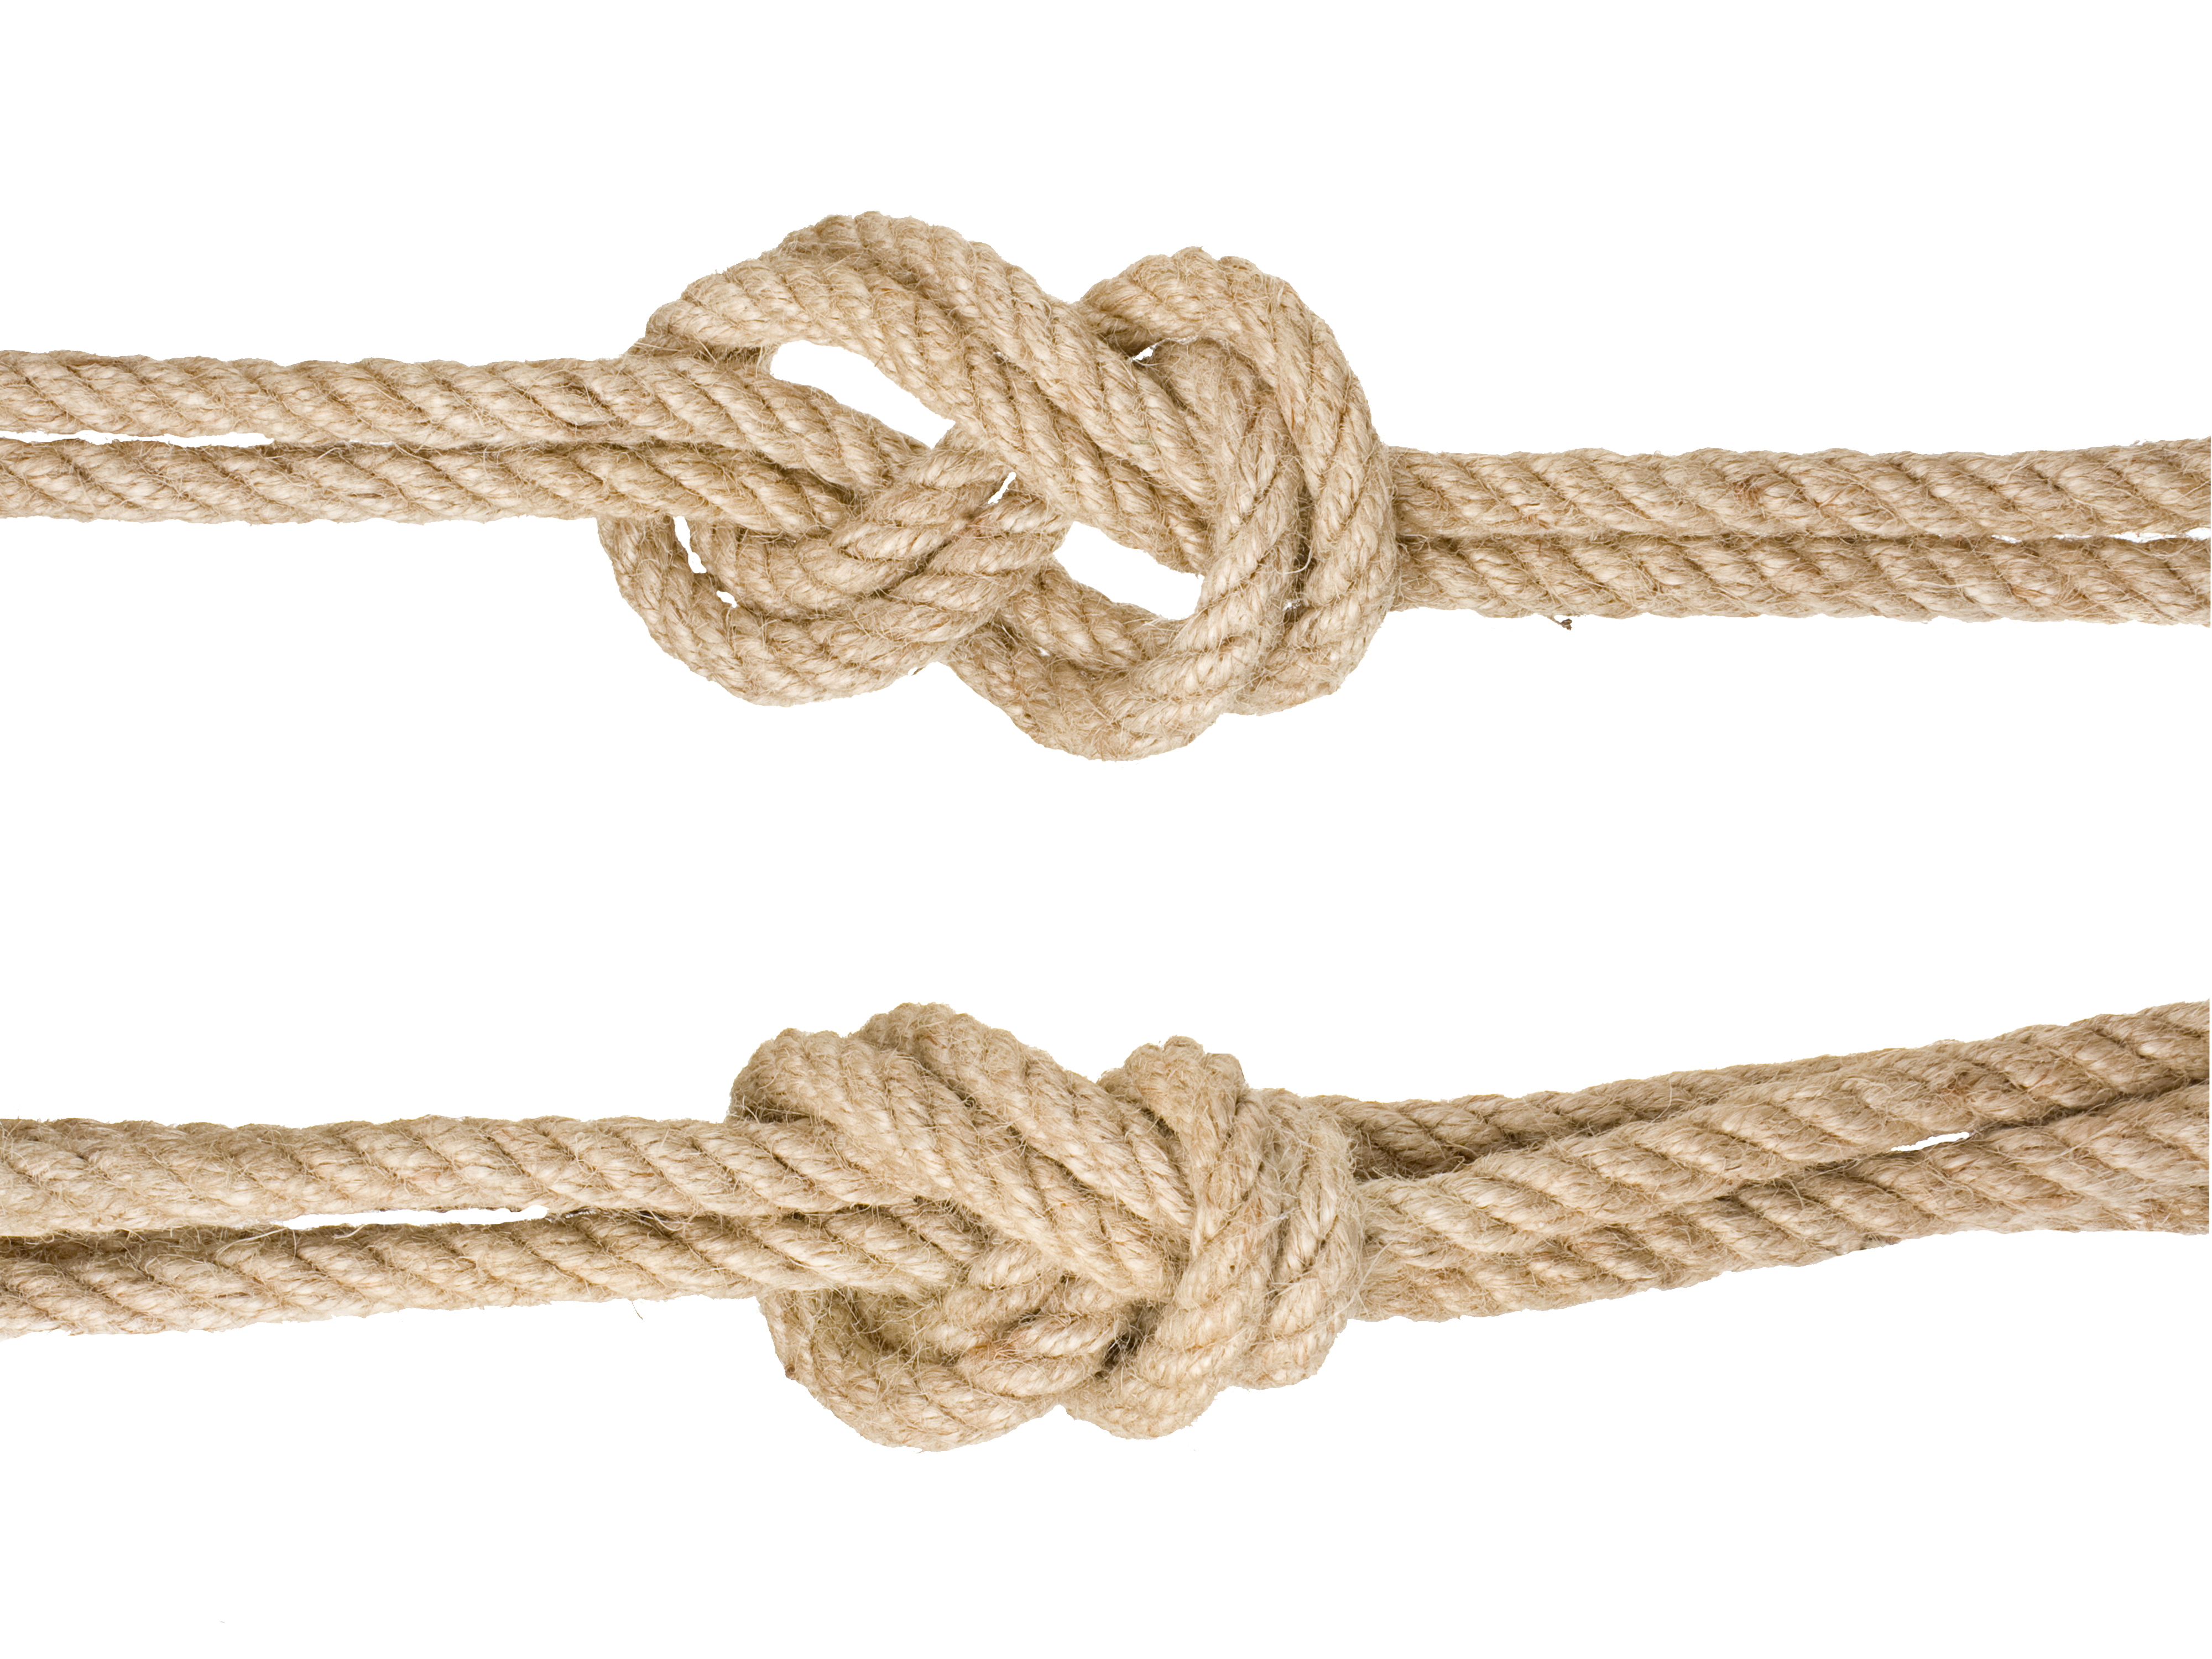 Google Knotted Rope Knot Images Hemp PNG Image